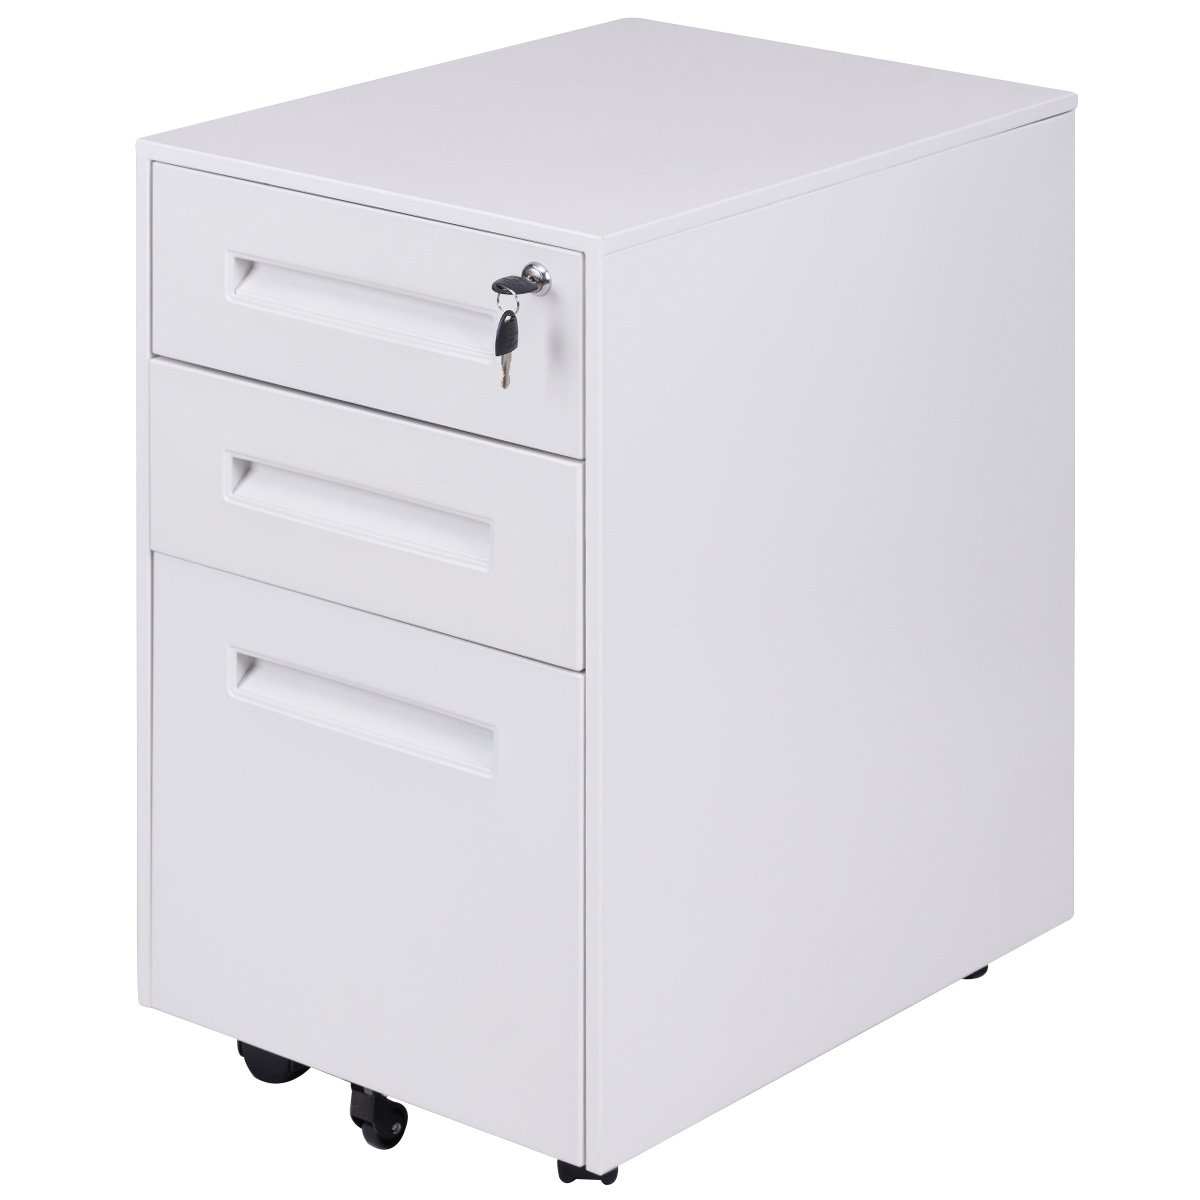 Giantex 3-Drawer Mobile File Cabinet with Lock Key Sliding Drawer for 5 Rolling Casters Metal Storage, A4 File Storage (White) by Giantex